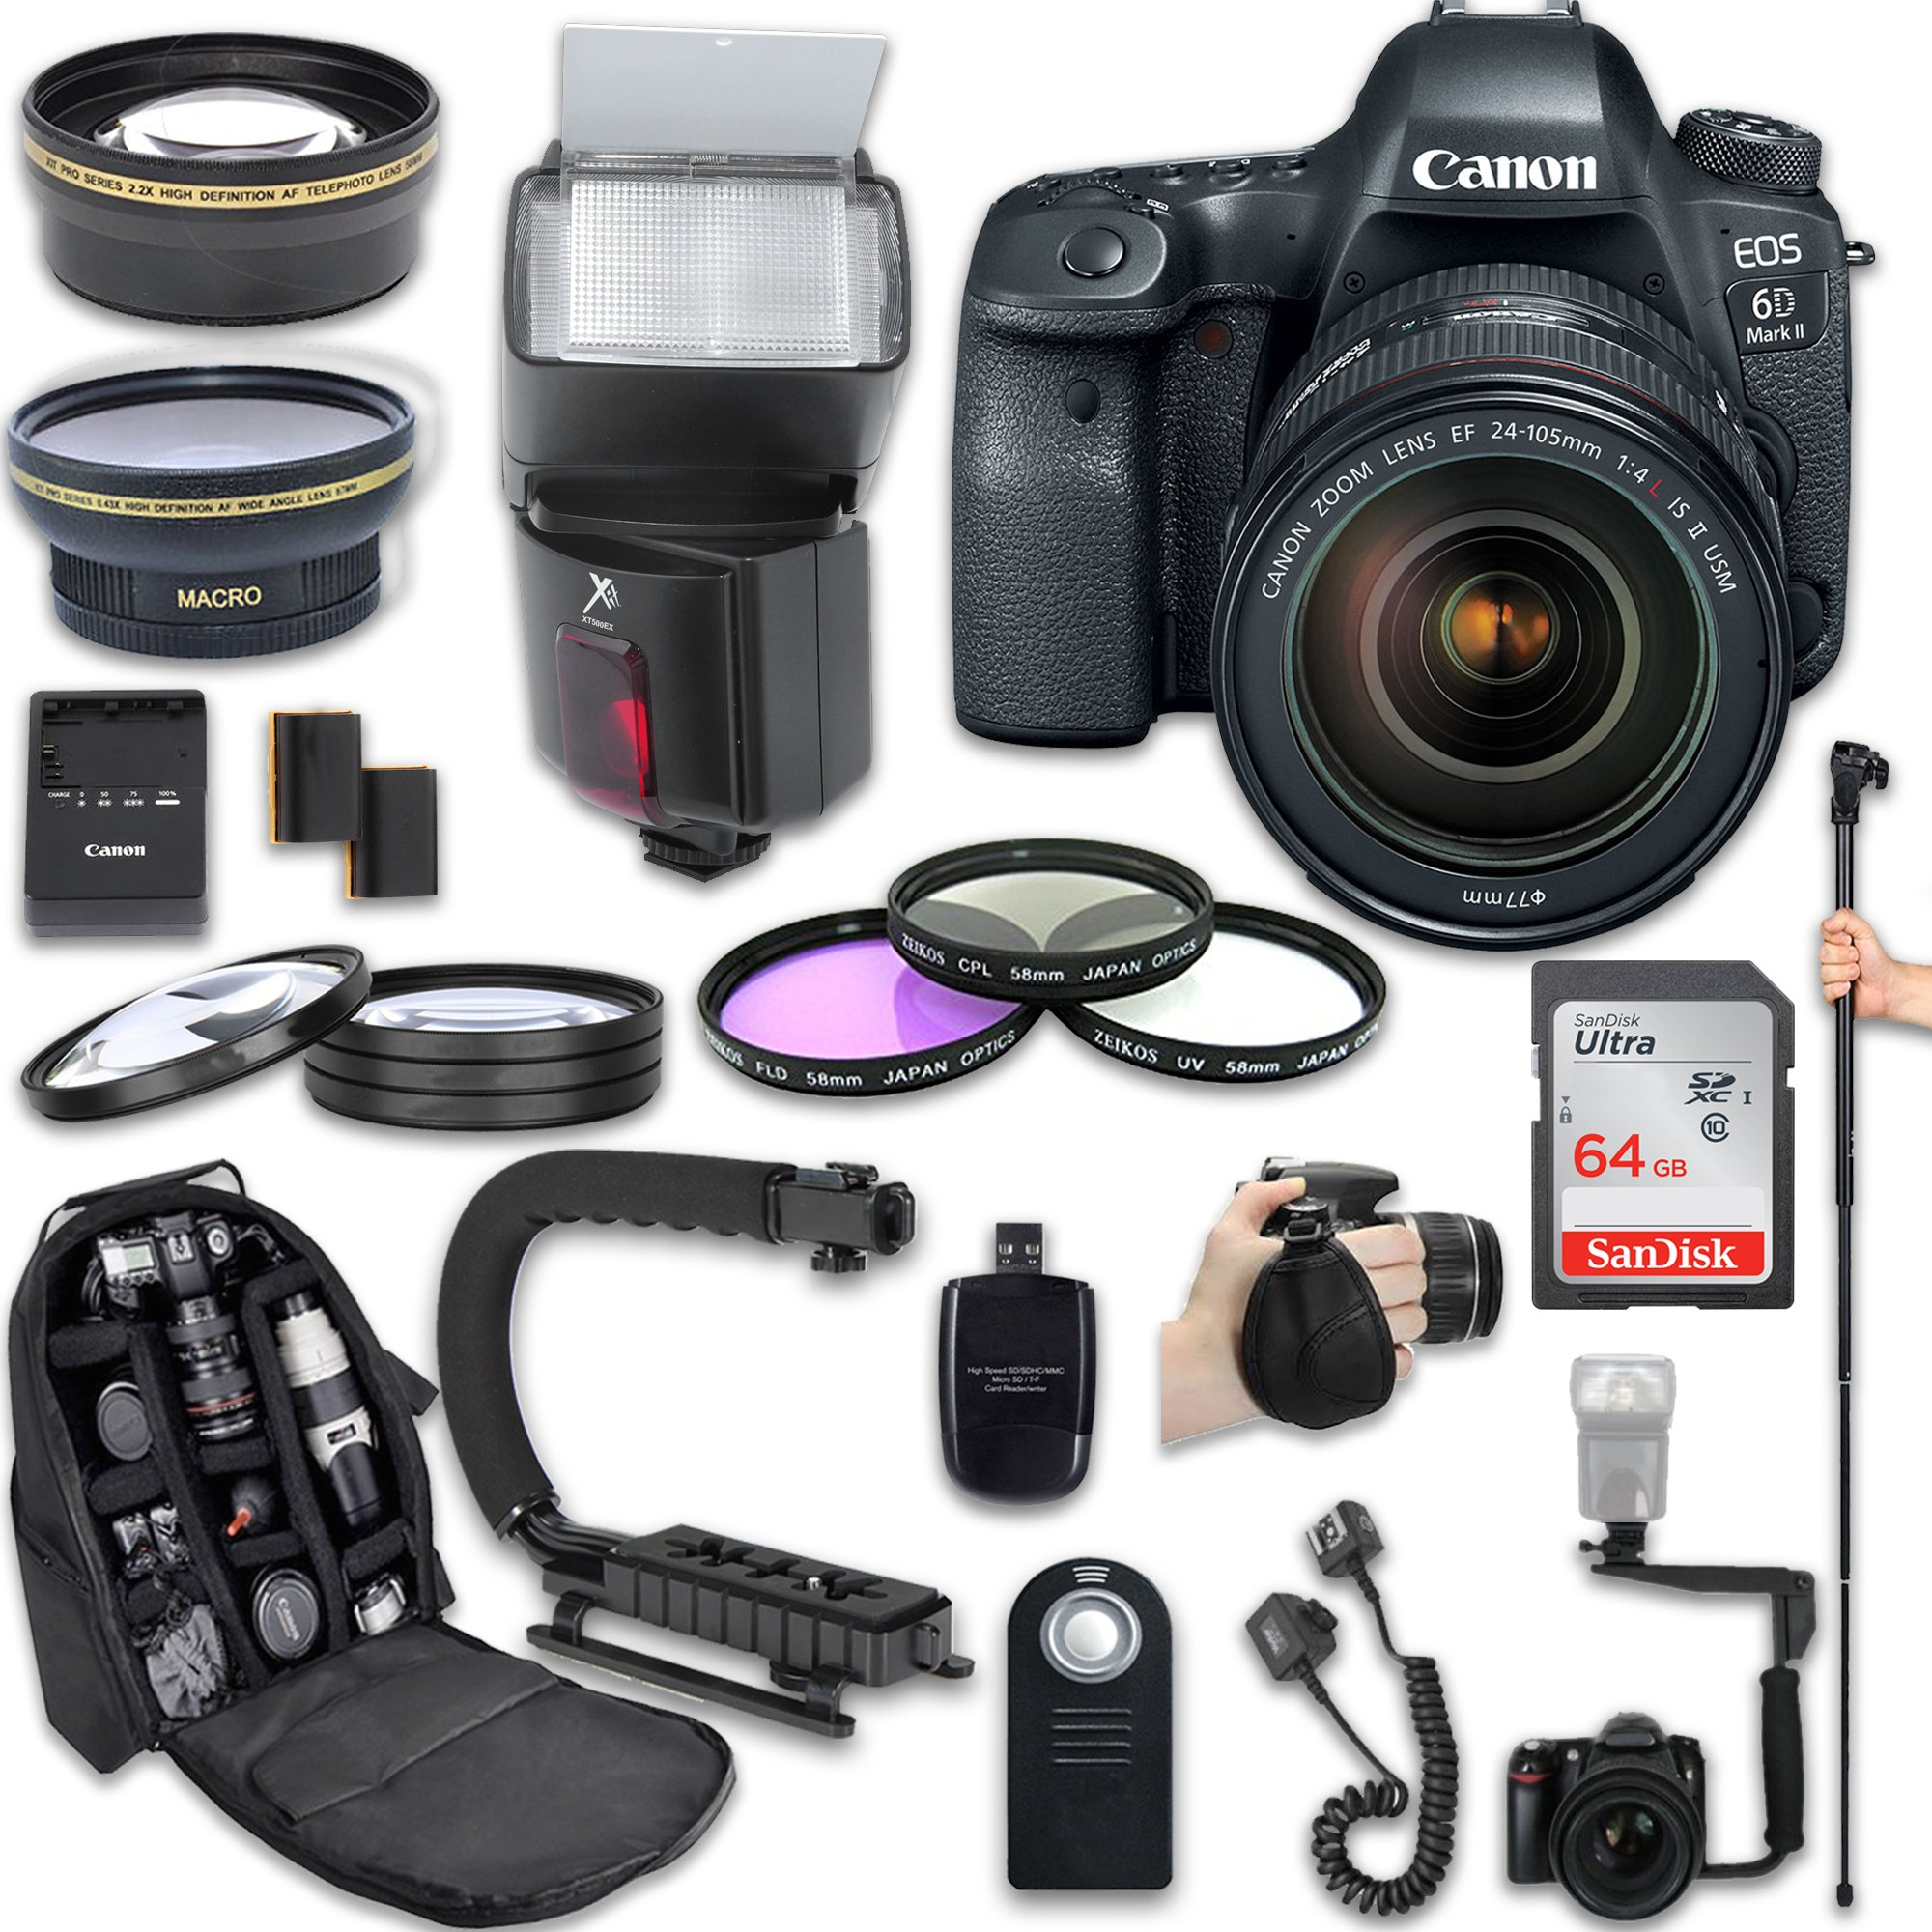 Canon EOS 6D Mark II DSLR Camera + Canon EF 24-105mm f/4L IS II USM Lens + Fully Dedicated TTL Flash + 64Gb SDXC Card + 57 Inch Monopod + FB-150 Flash Bracket + Backpack Case (21 items kit) by Canon